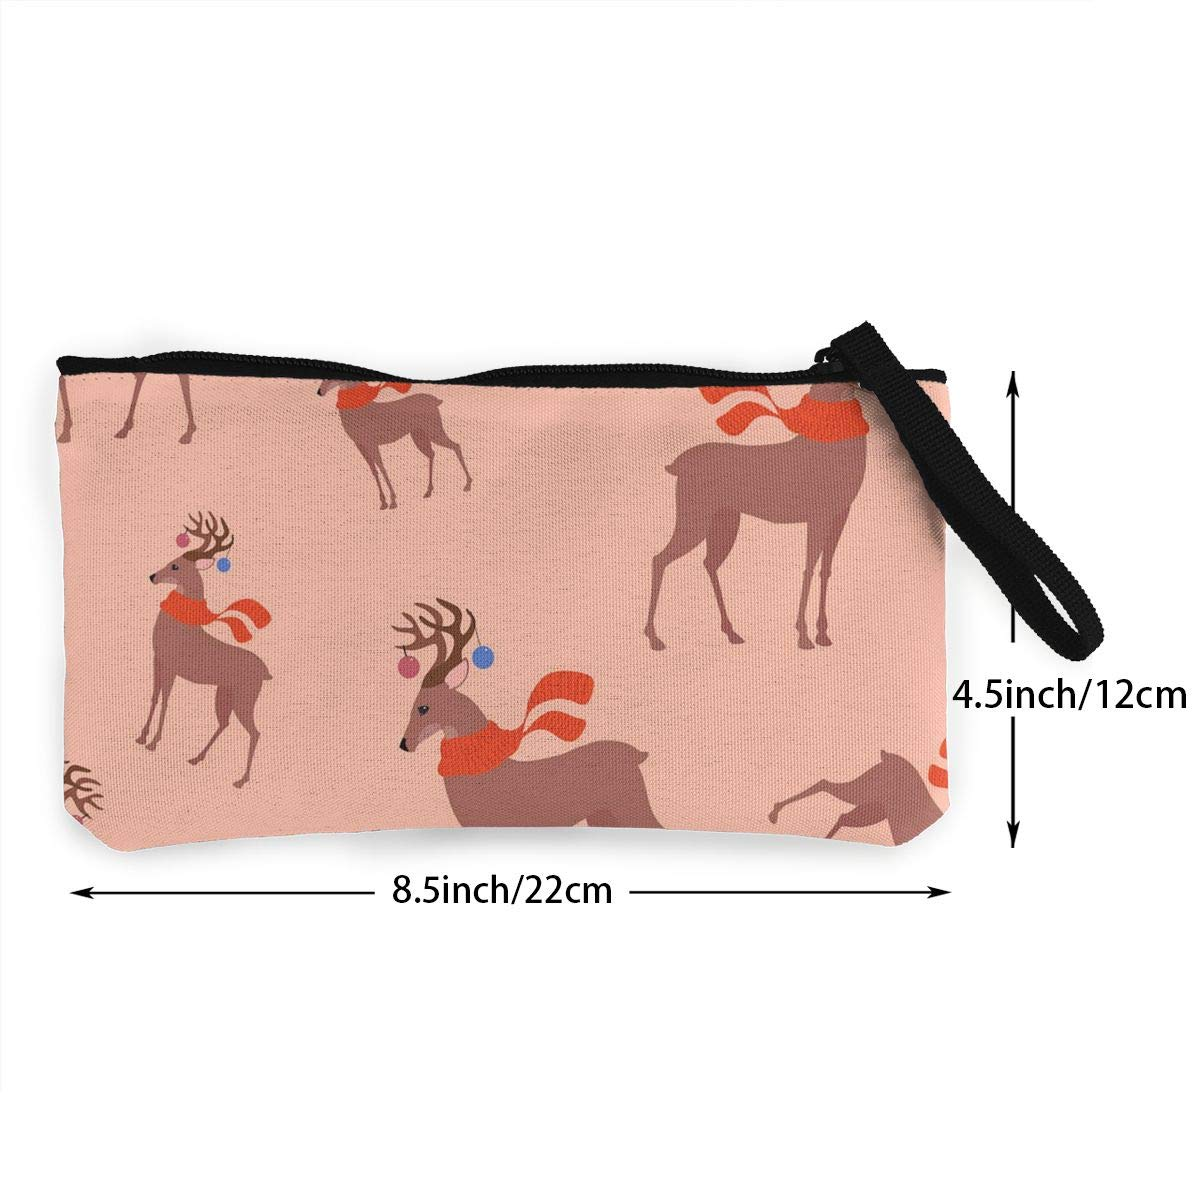 Yamini Milu Deer in The New Year Cute Looking Coin Purse Small and Exquisite Going Out to Carry Purse